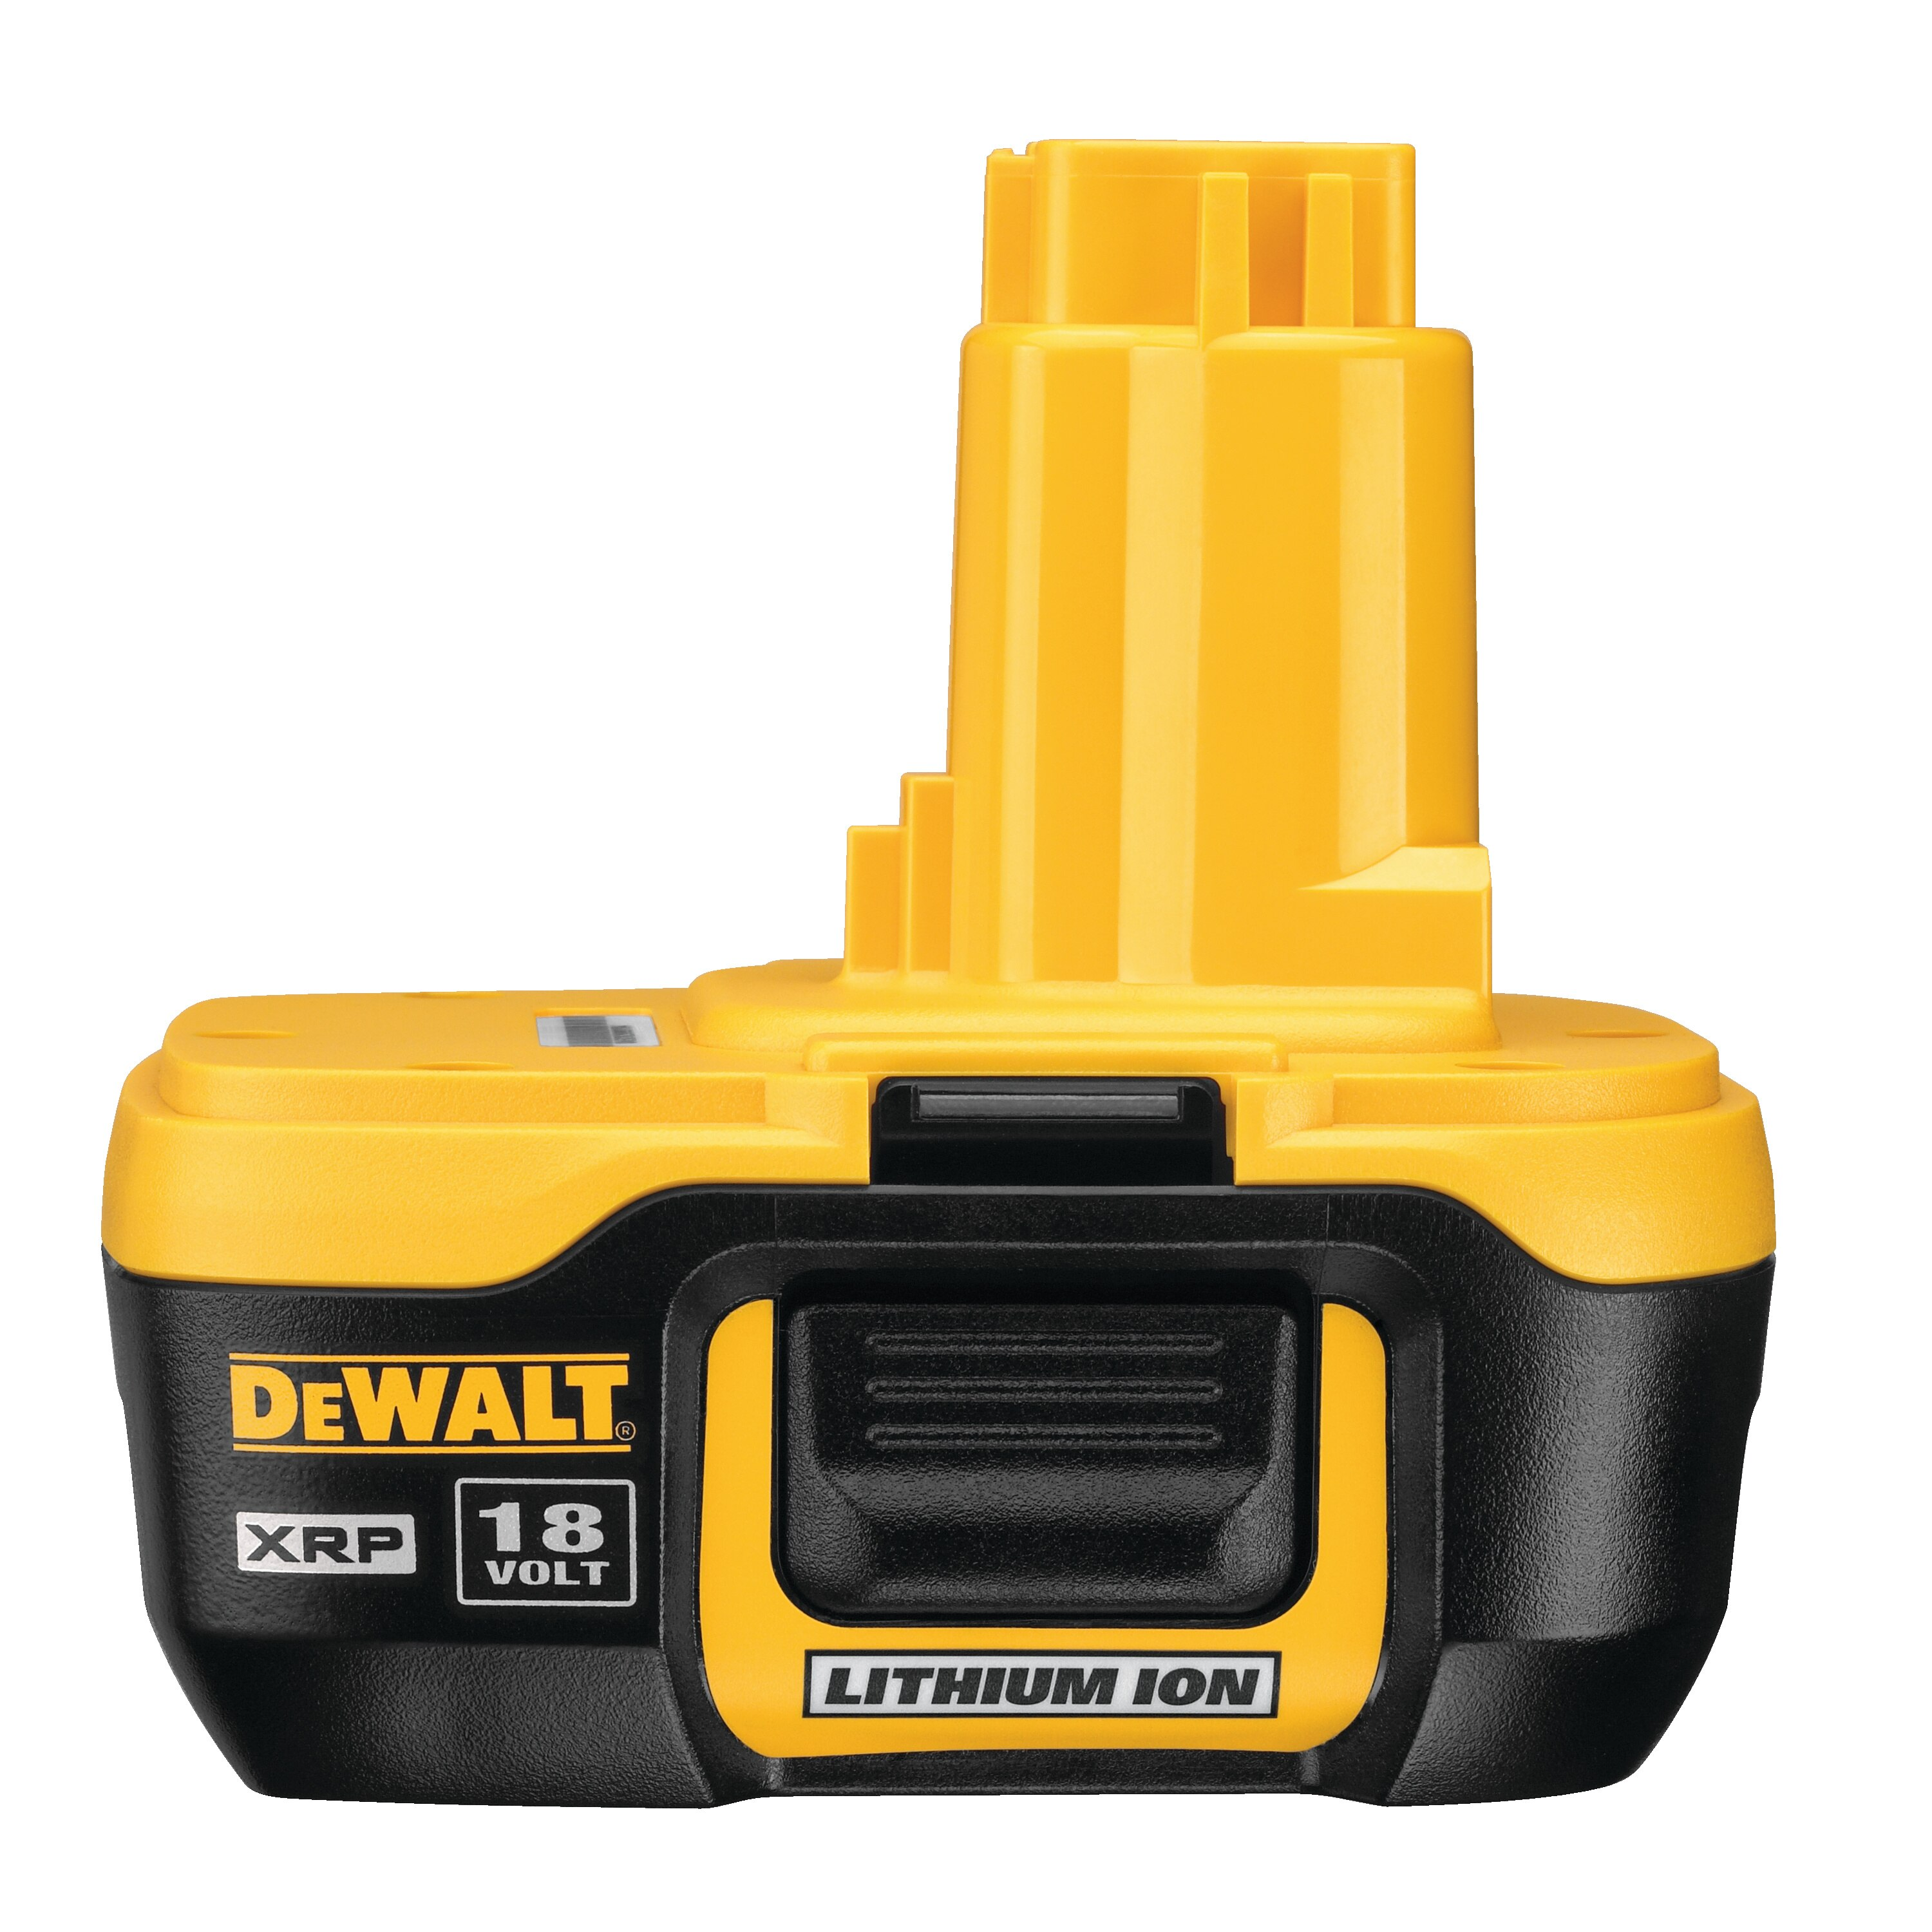 18v Xrp 174 Li Ion Battery Dc9182 Dewalt